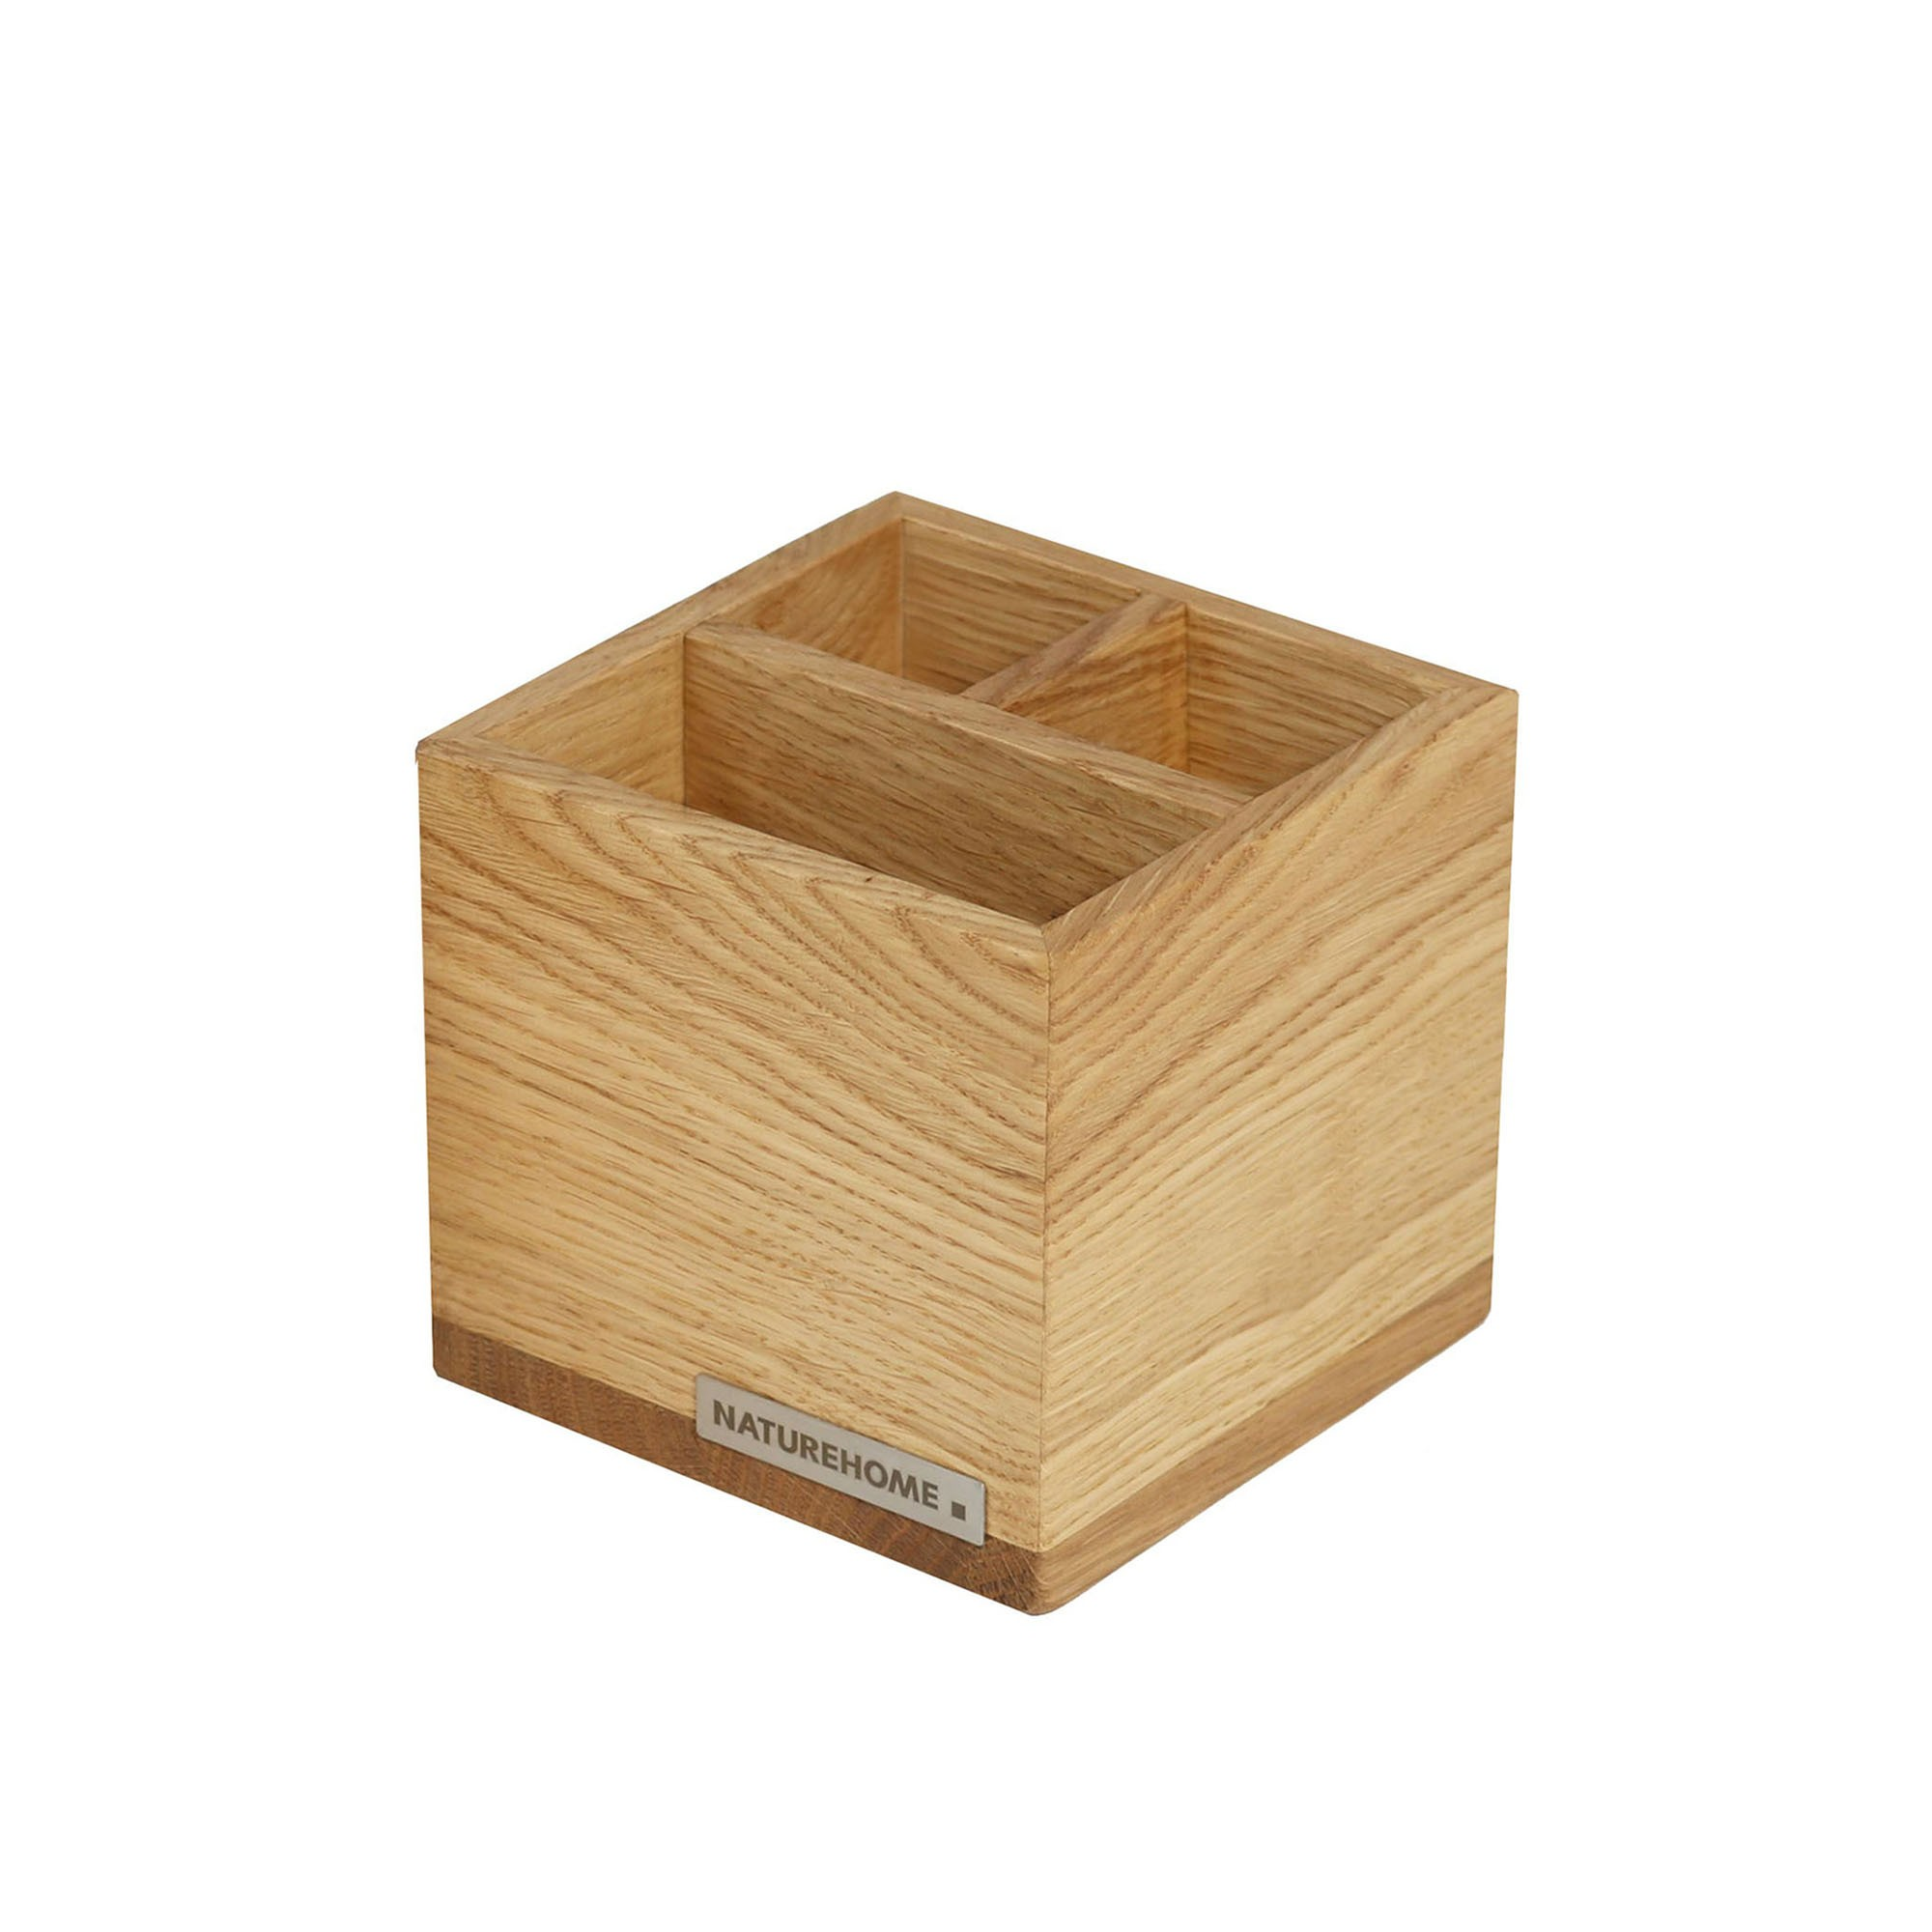 Naturehome Office Pencil Box Pen Holder Classic Oak Wood Naturehome - Holz Box